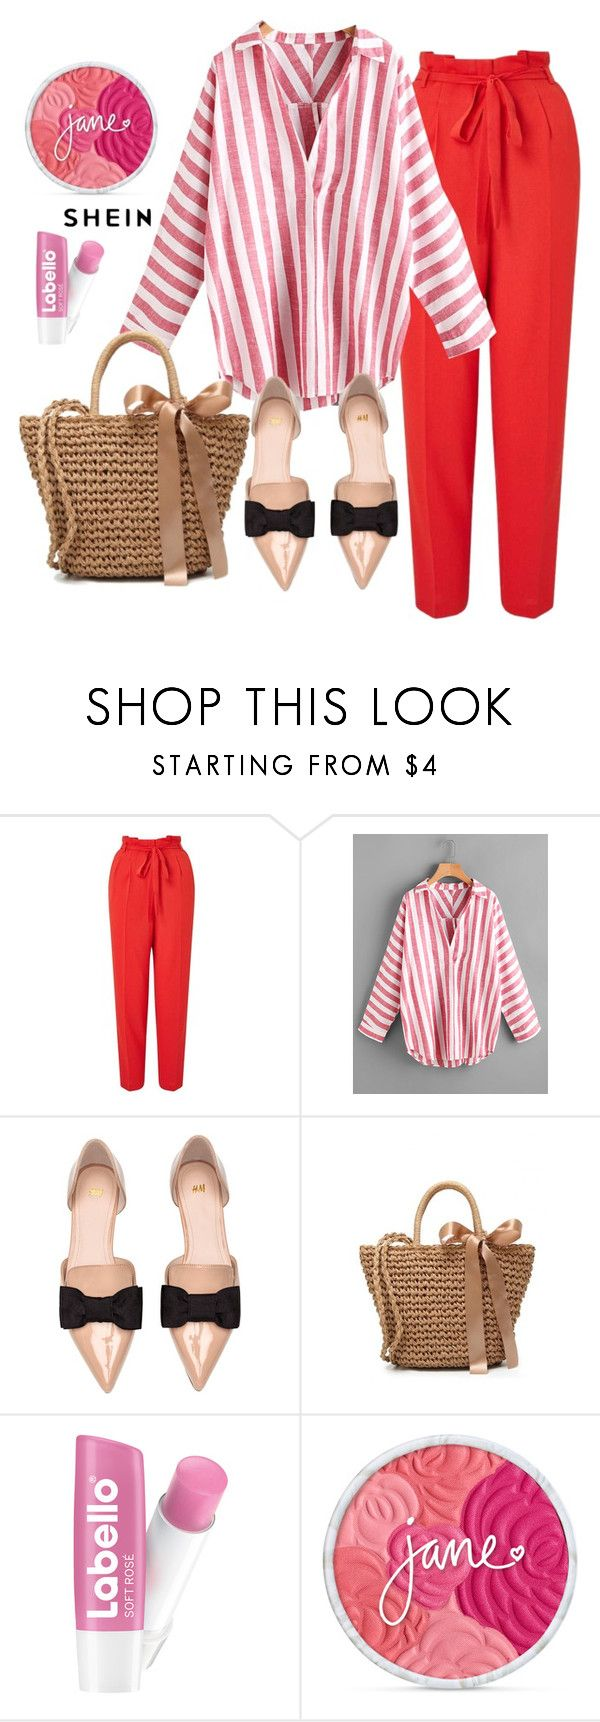 """""""Shein"""" by salama-iii ❤ liked on Polyvore featuring Miss Selfridge and H&M"""